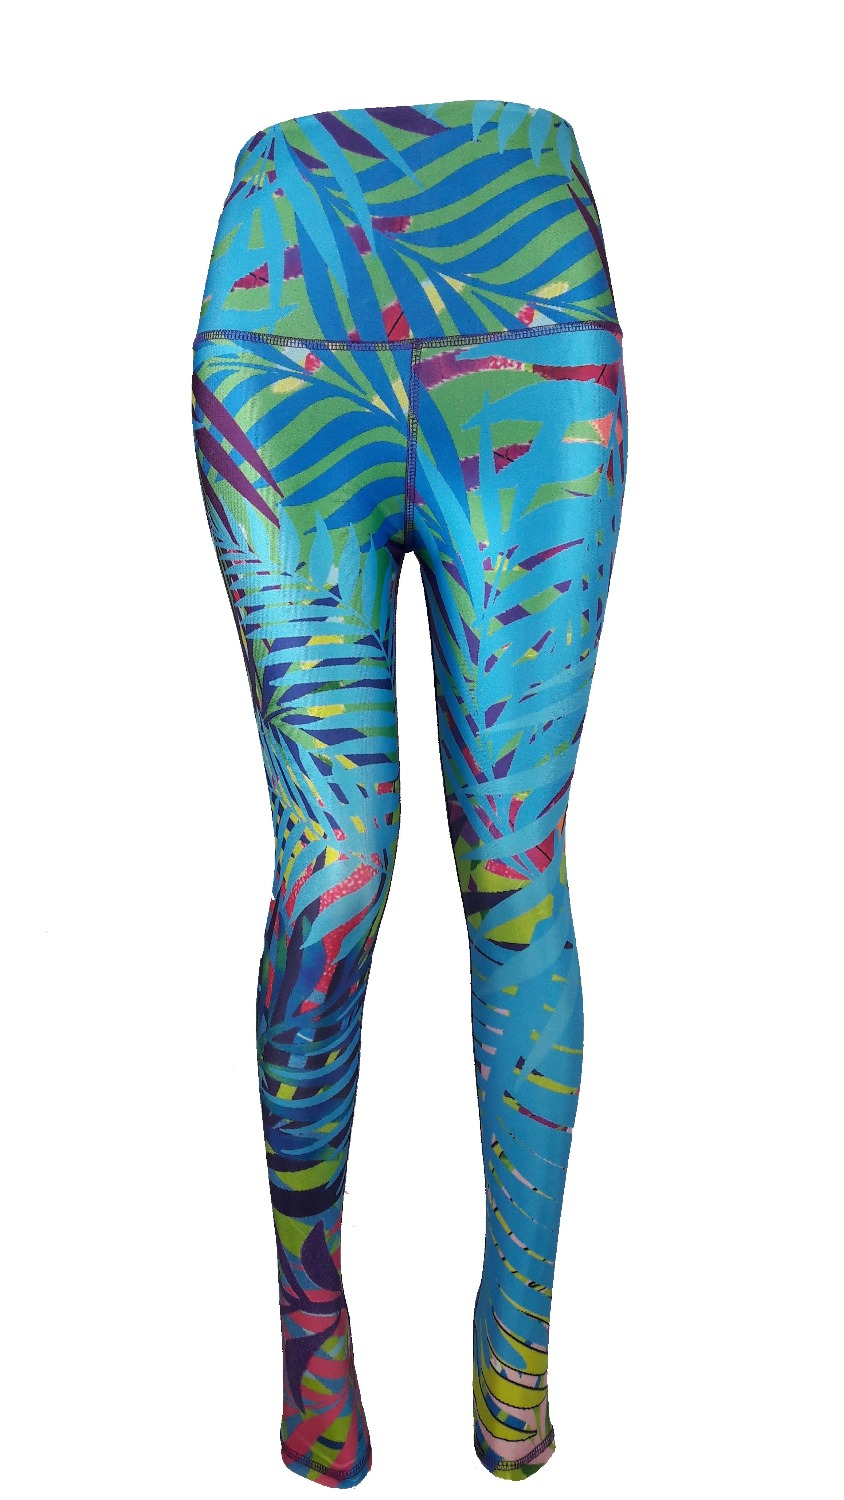 c6b9bb4276b77 JIGERJOGER 2016SS Spring Summer Thick Fabric Designer palm jungle Tropical  leaves Workout Running leggings Sports Yoga pants